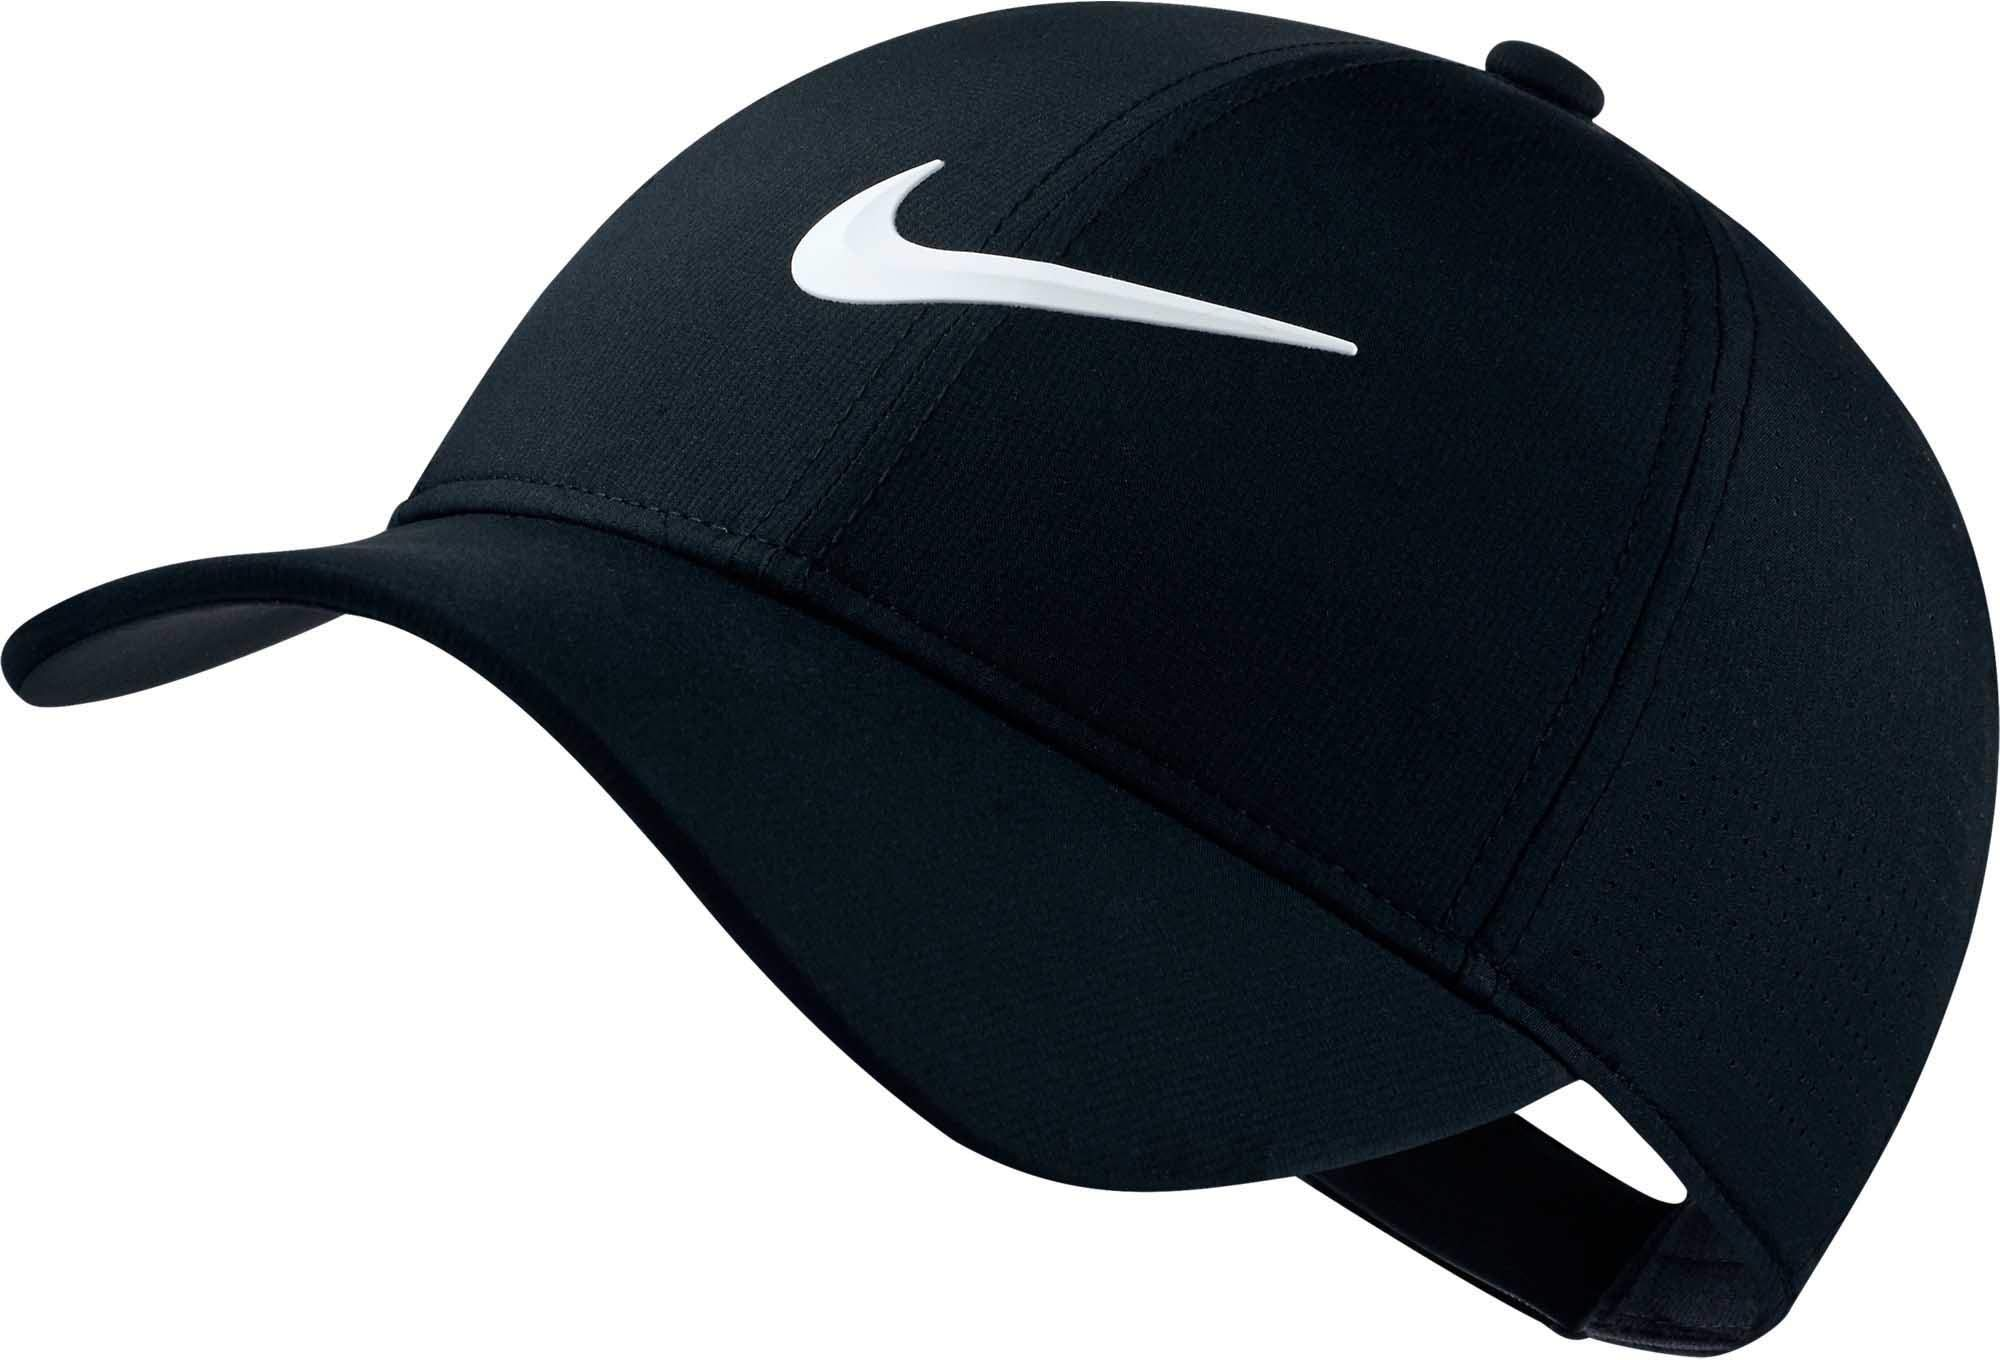 NIKE Women's AeroBill Legacy 91 Perforated Cap, Black/Anthracite/White, One Size by Nike